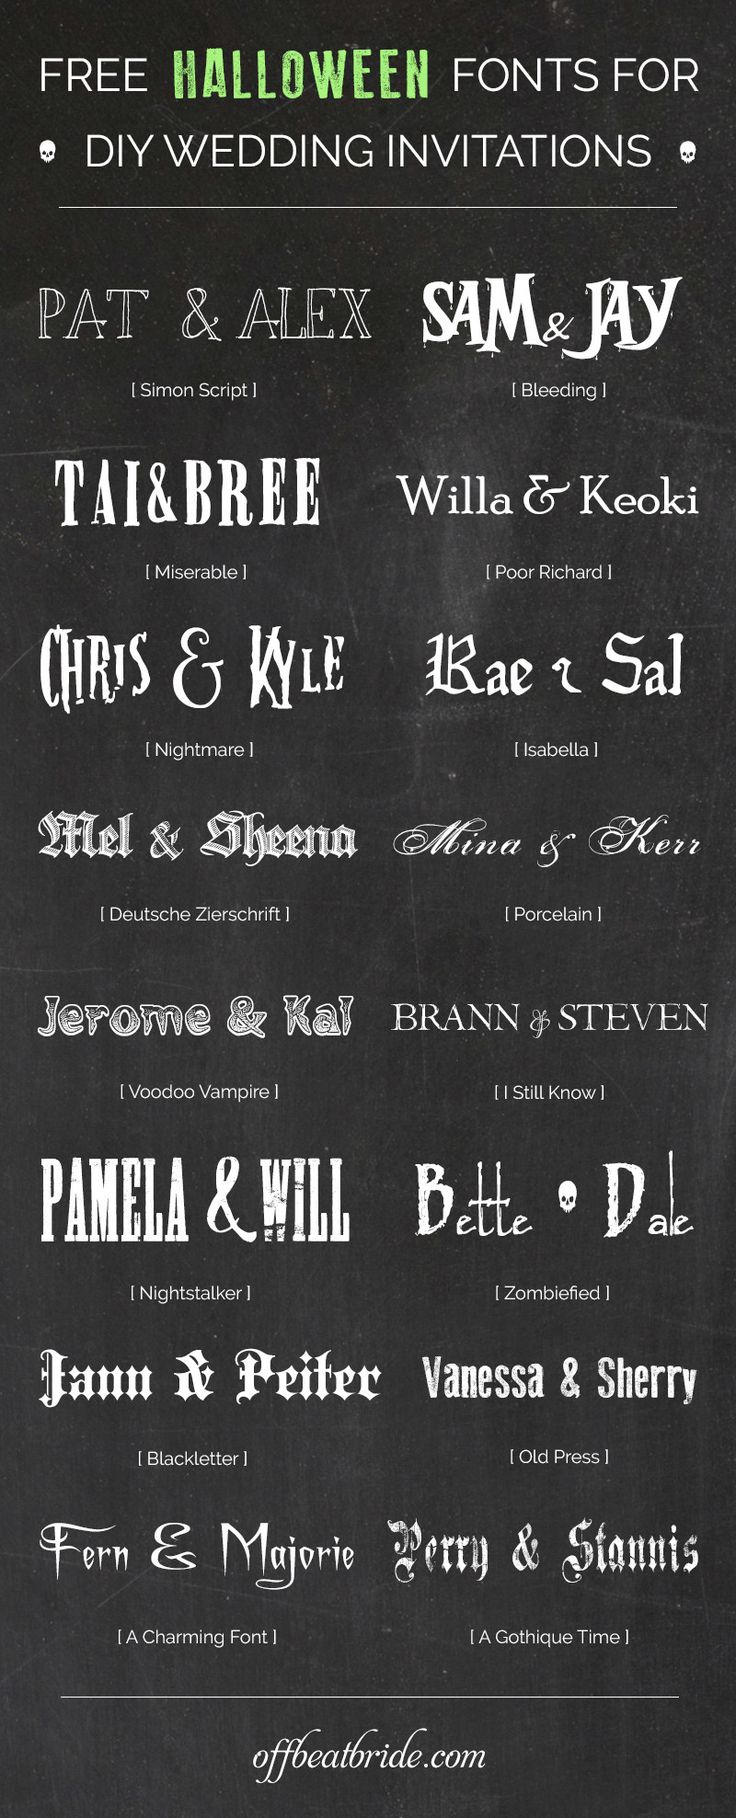 16 bewitching free halloween fonts for scarily good diy wedding invitations - Wedding Invitation Fonts